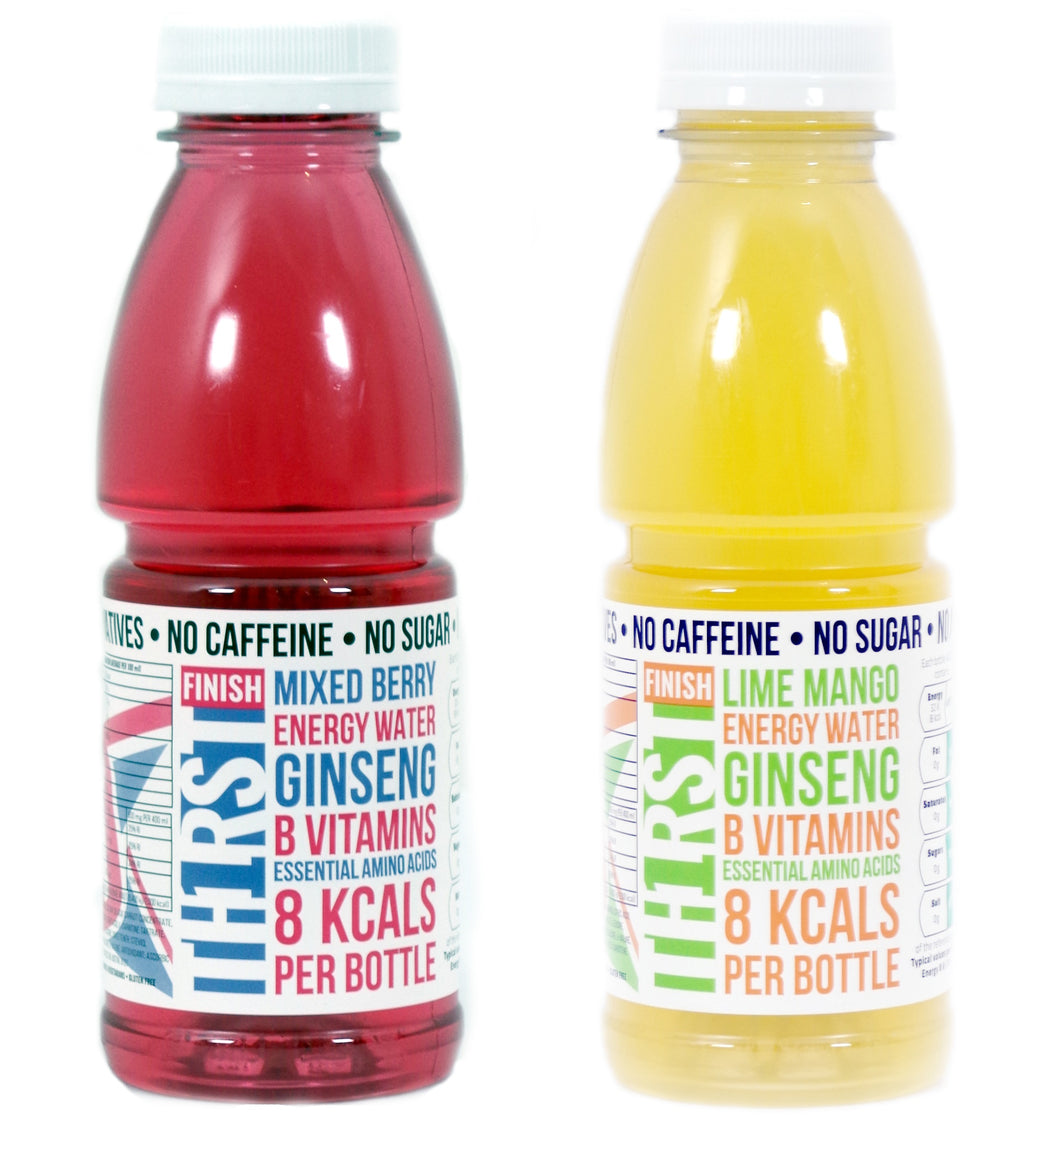 36 x TH1RST (12 x LIME MANGO & 24 x MIXED BERRY) ENERGY WATER WITH GINSENG, AMINO ACIDS & VITAMINS (400ml)